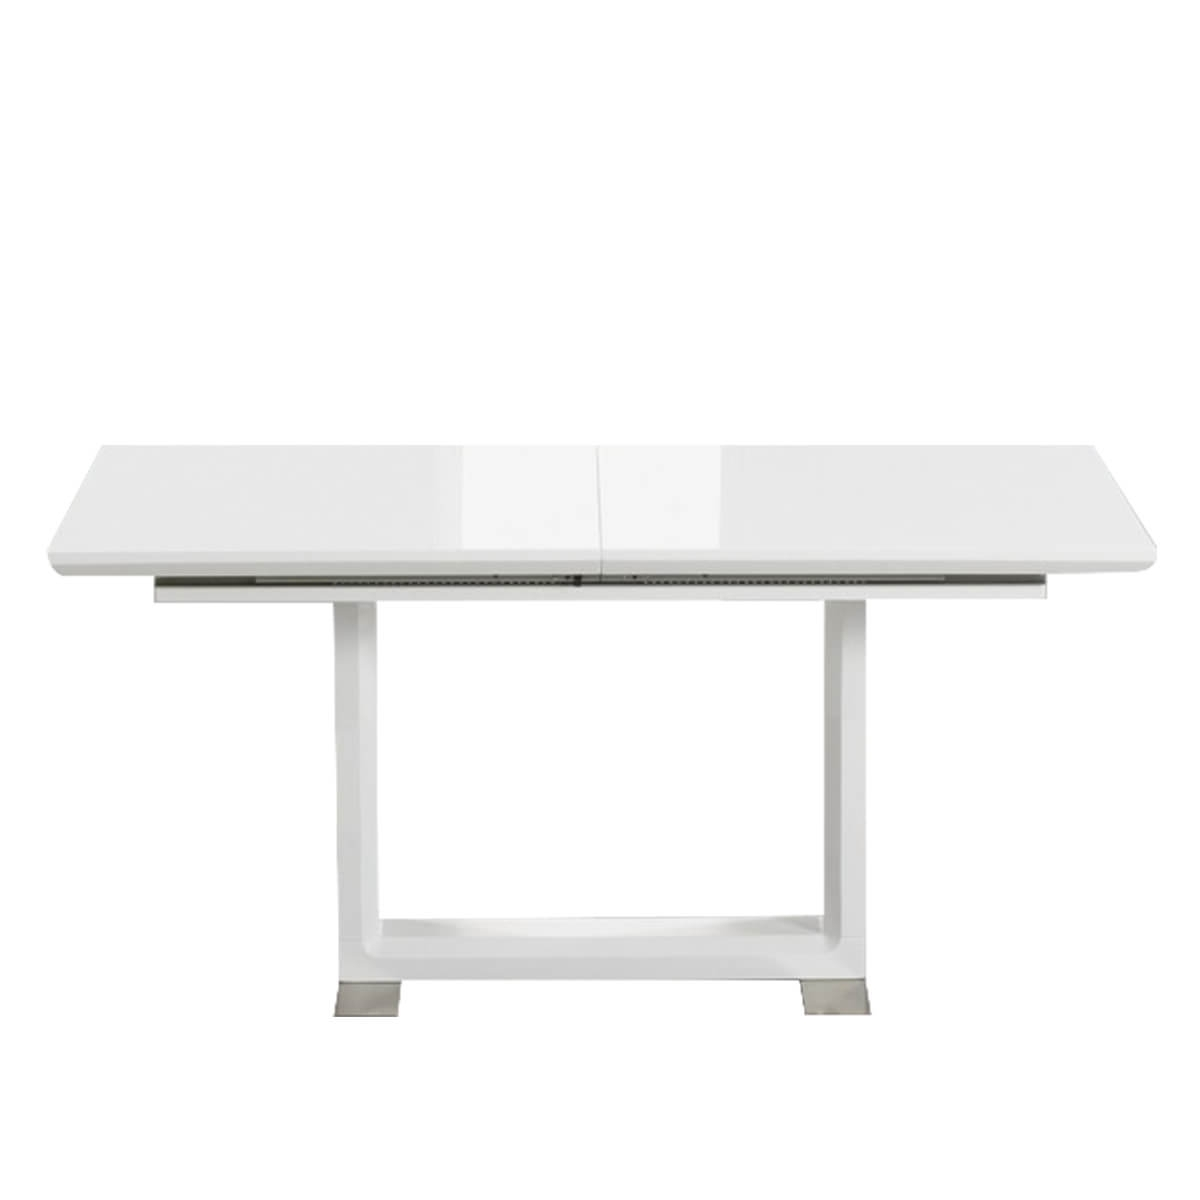 Preferred Beckley 6 8 Seater White High Gloss Extending Dining Table Inside White Gloss Dining Tables 140Cm (View 22 of 25)